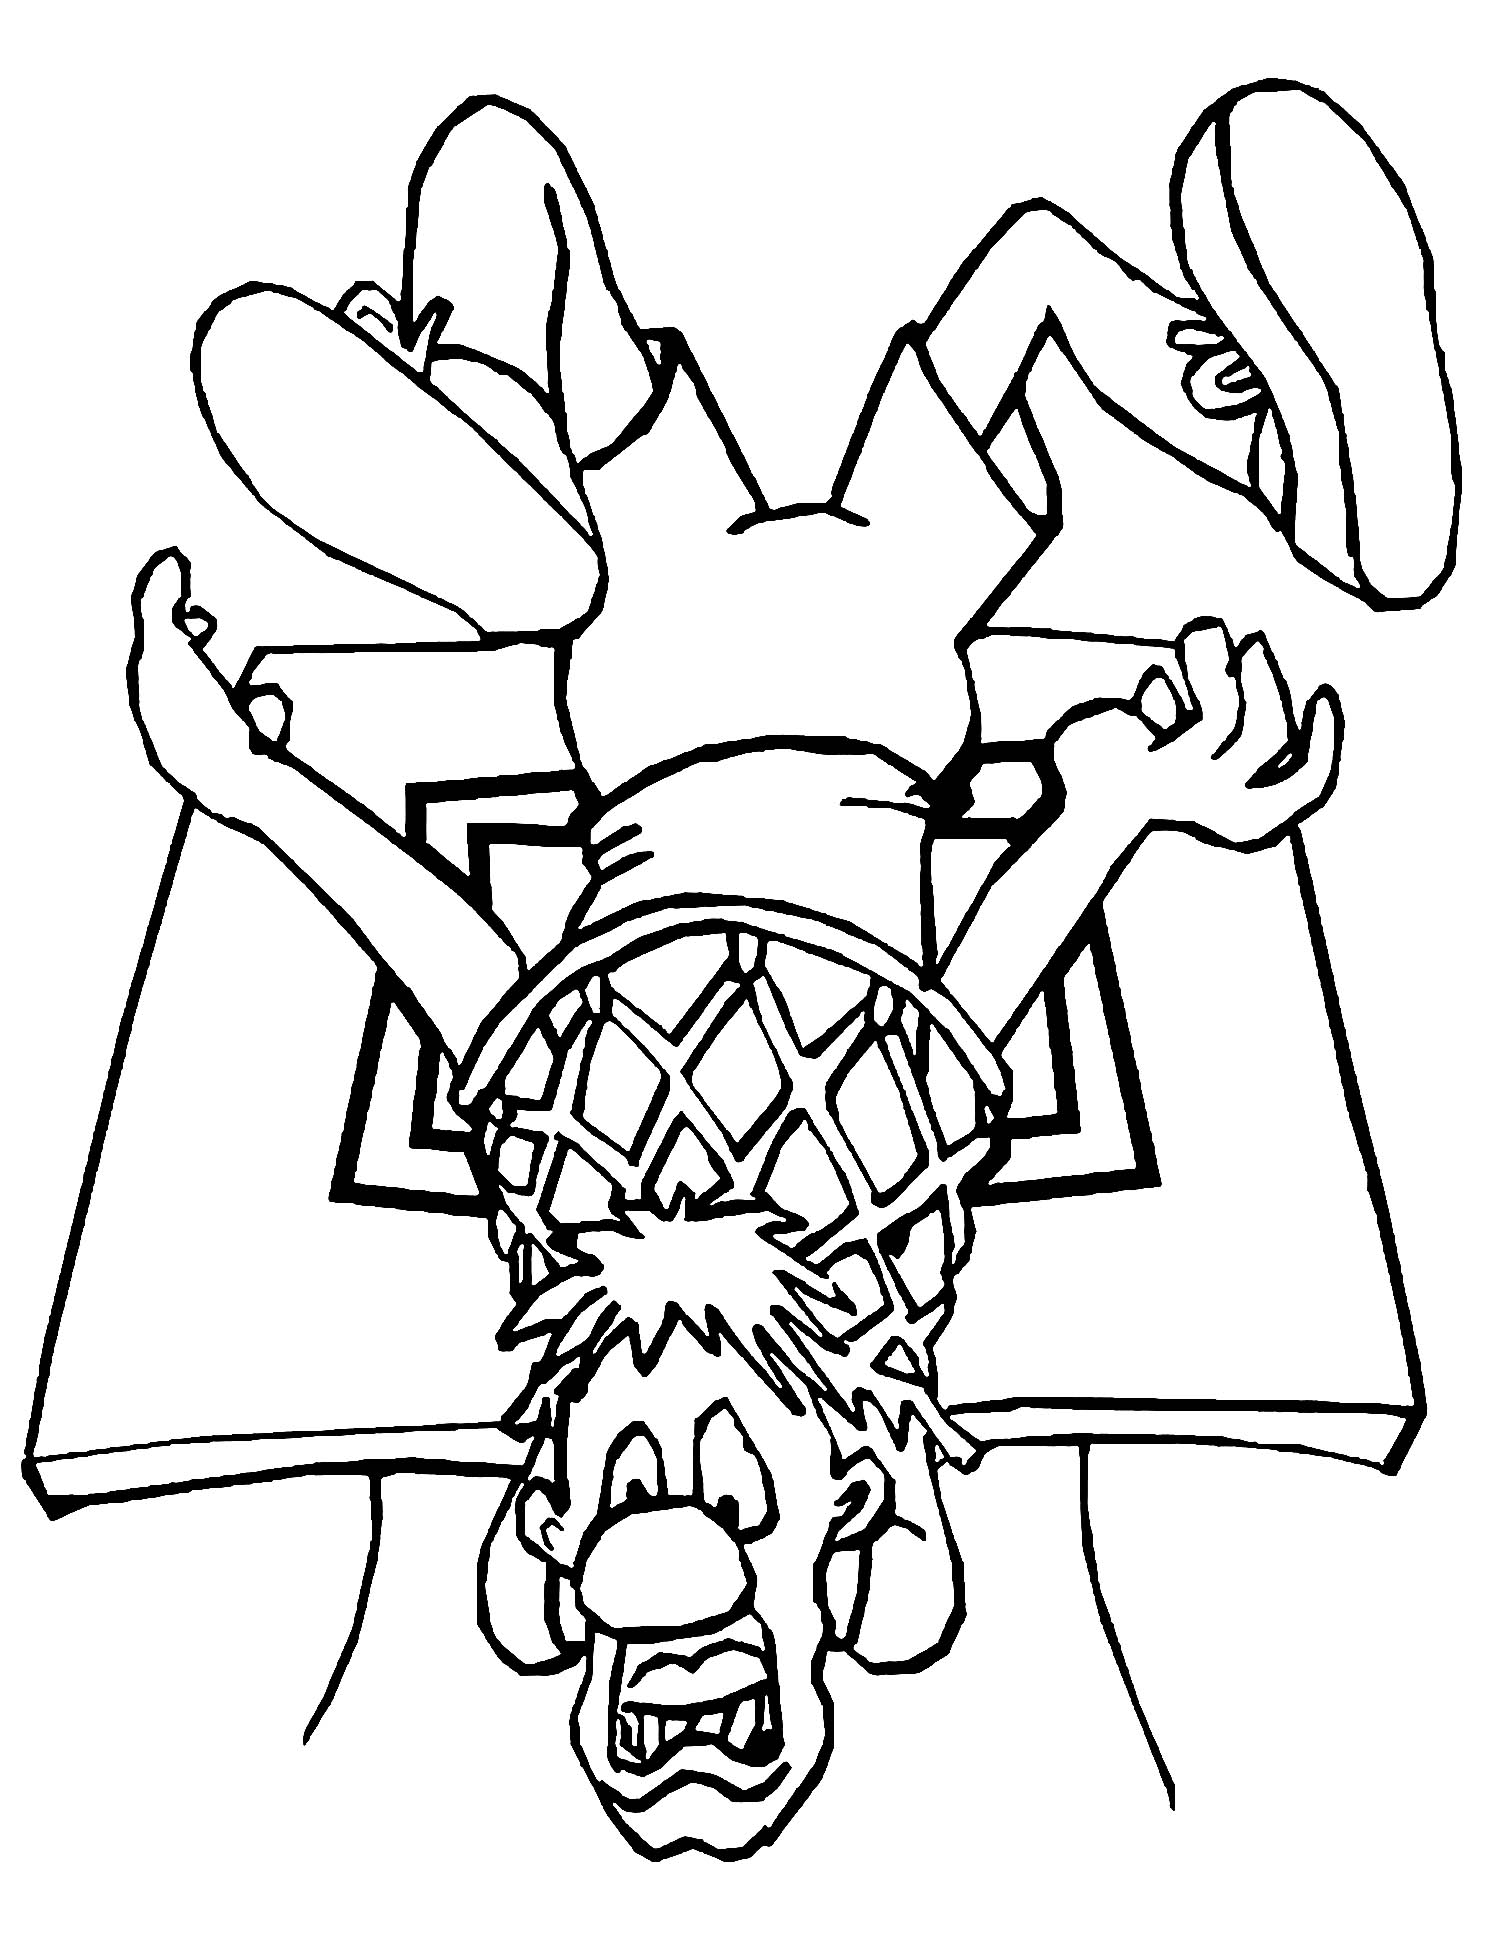 basketball pictures to color basketball for kids basketball kids coloring pages to pictures basketball color